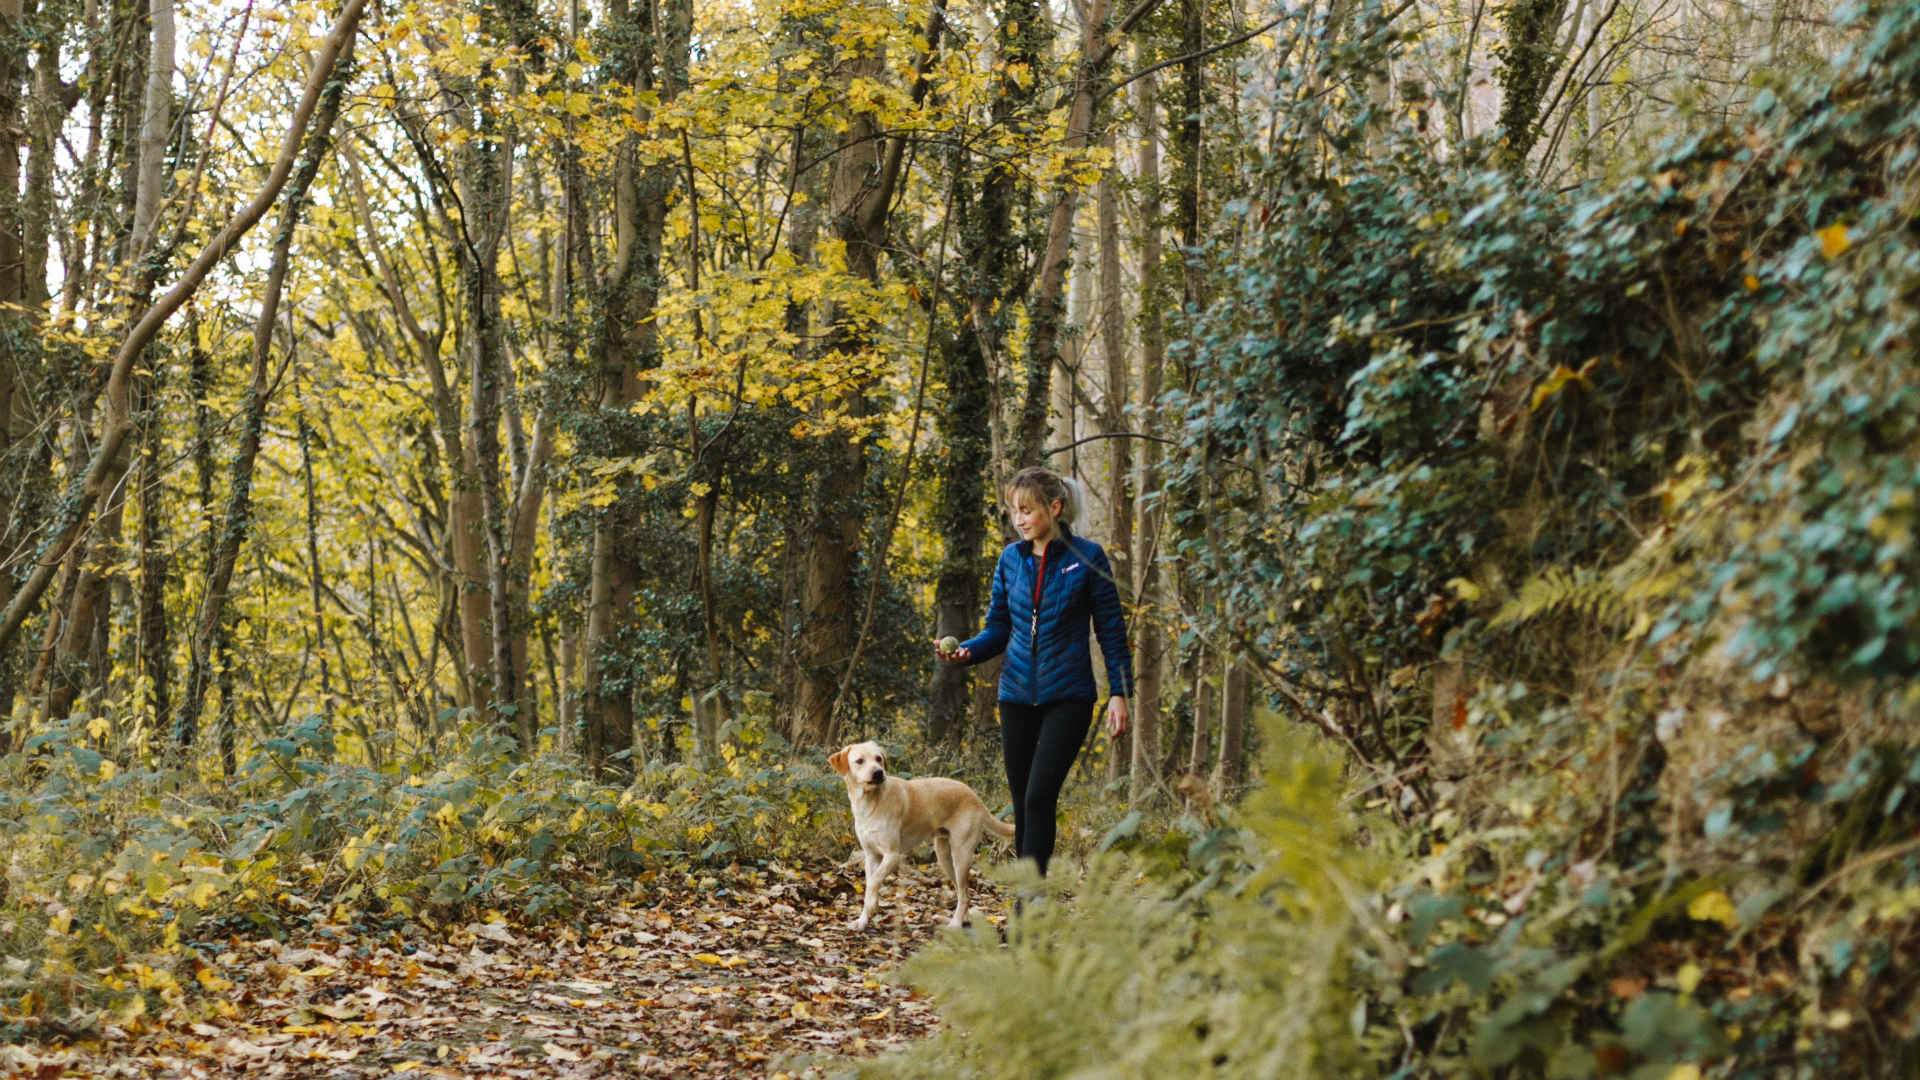 Eight Epic (But Easy) Walks You Can Do with Your Dog in Canberra This Year